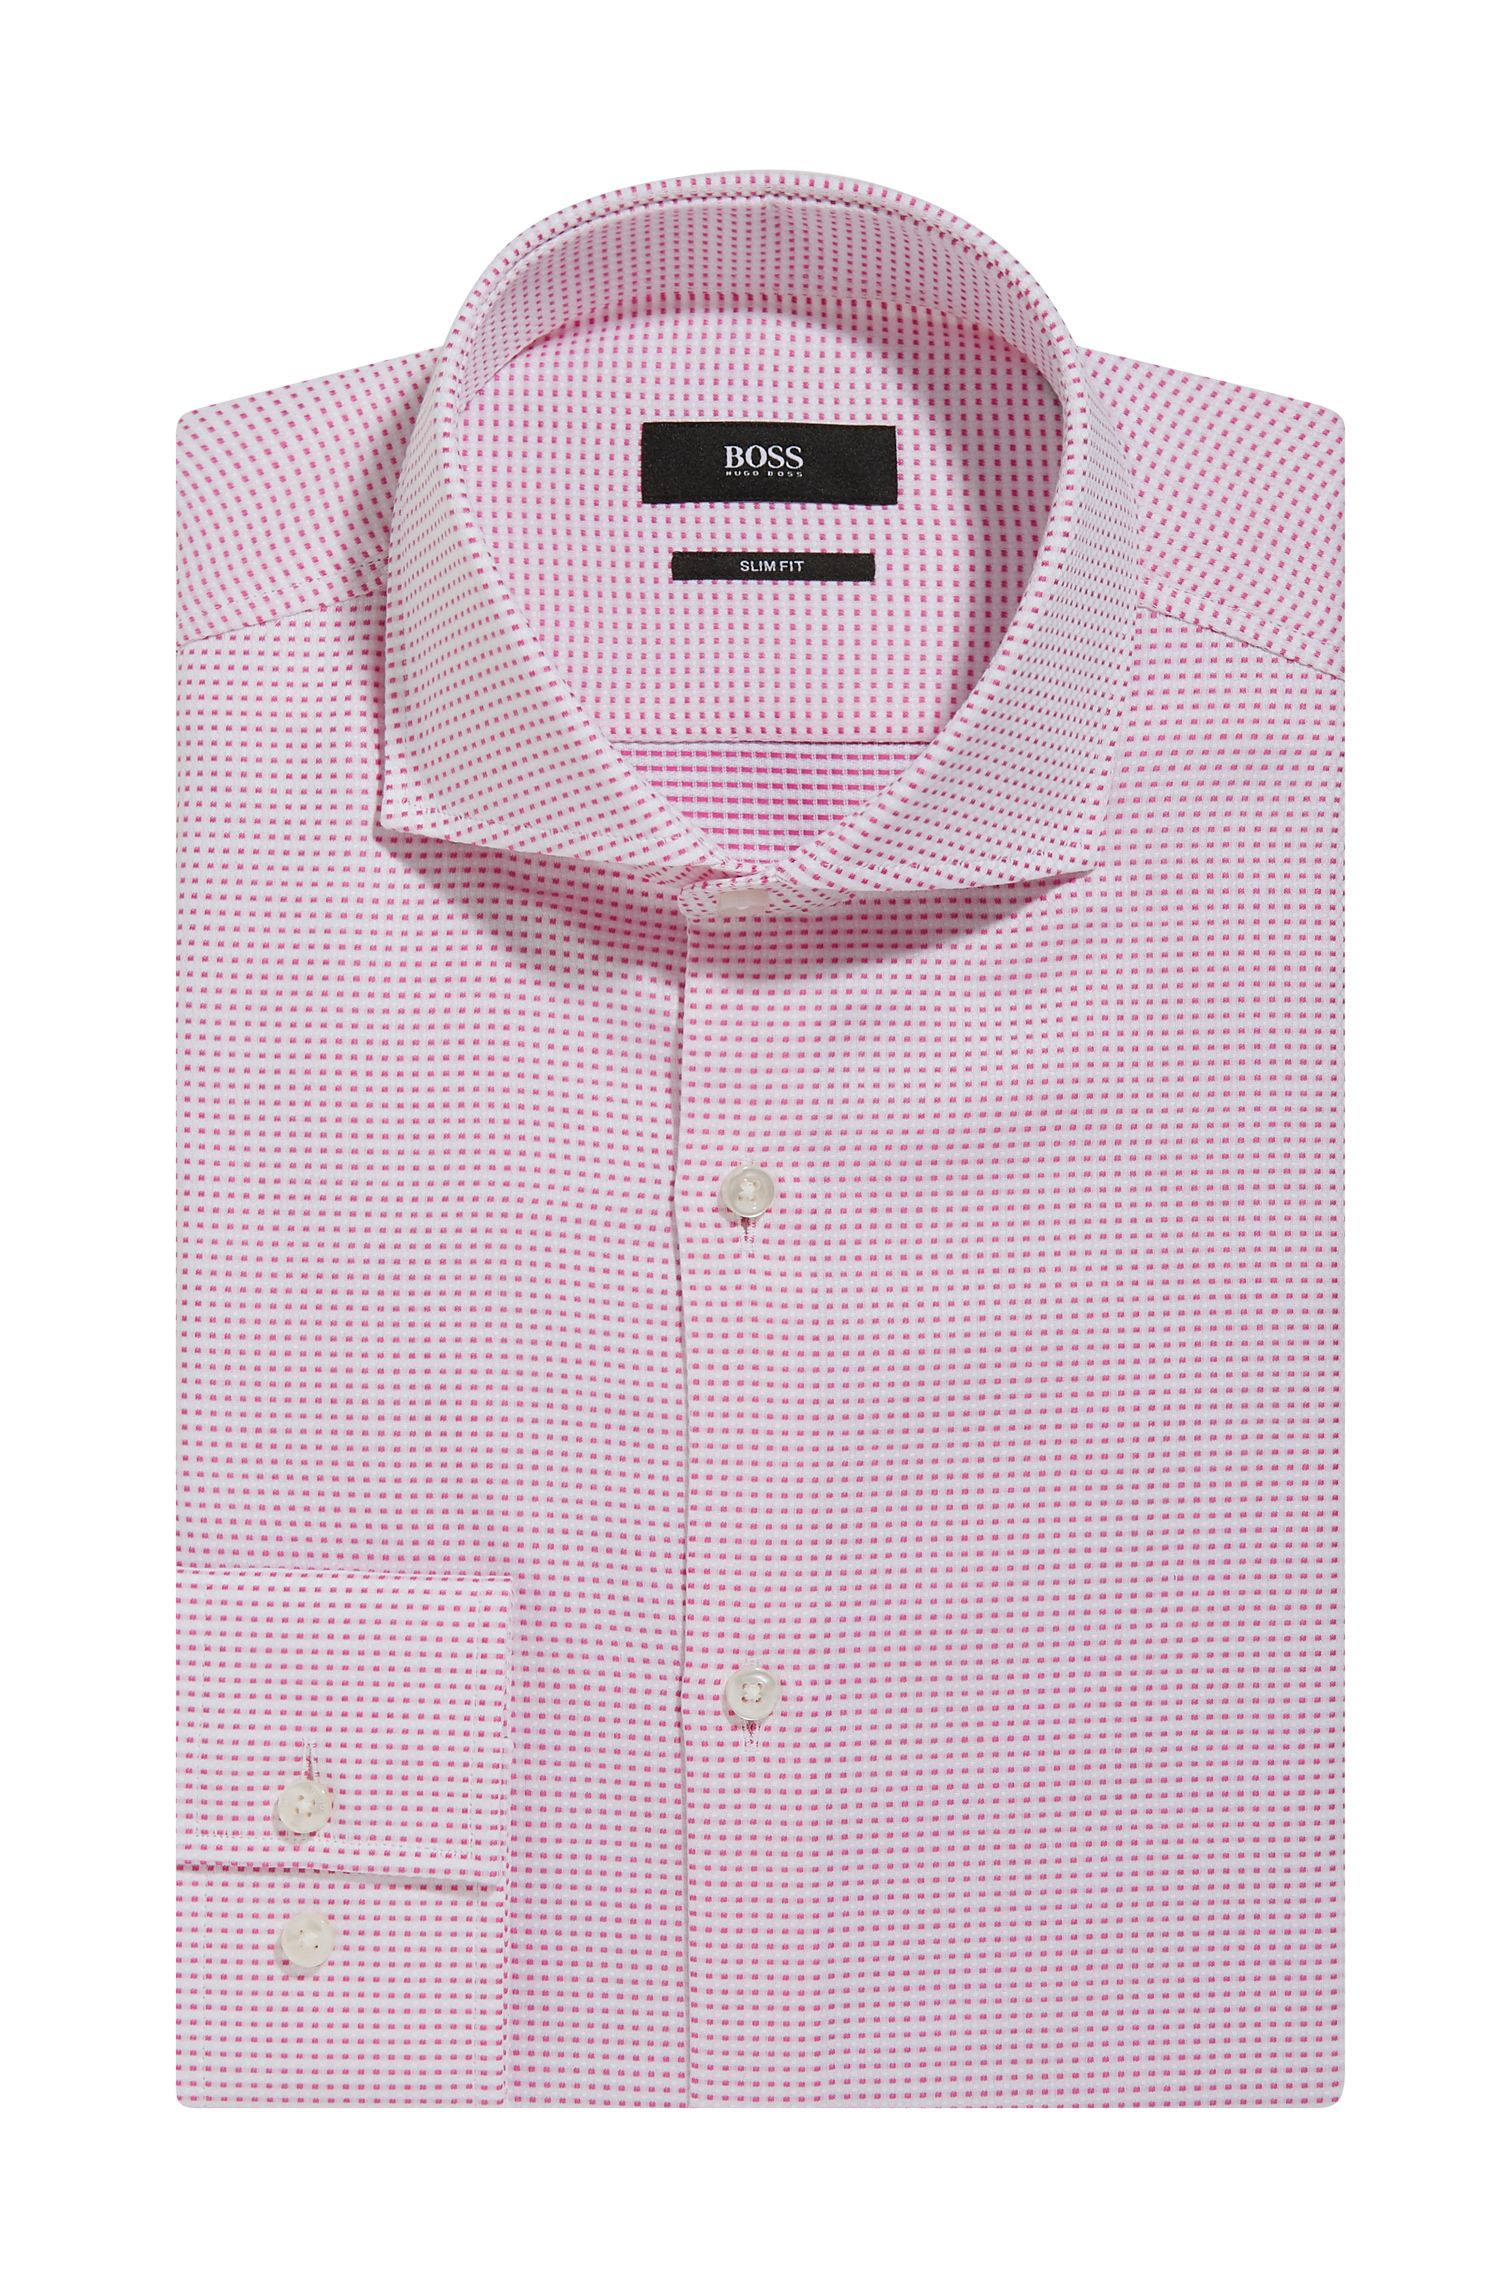 Patterned Cotton Dress Shirt, Slim Fit | Jason